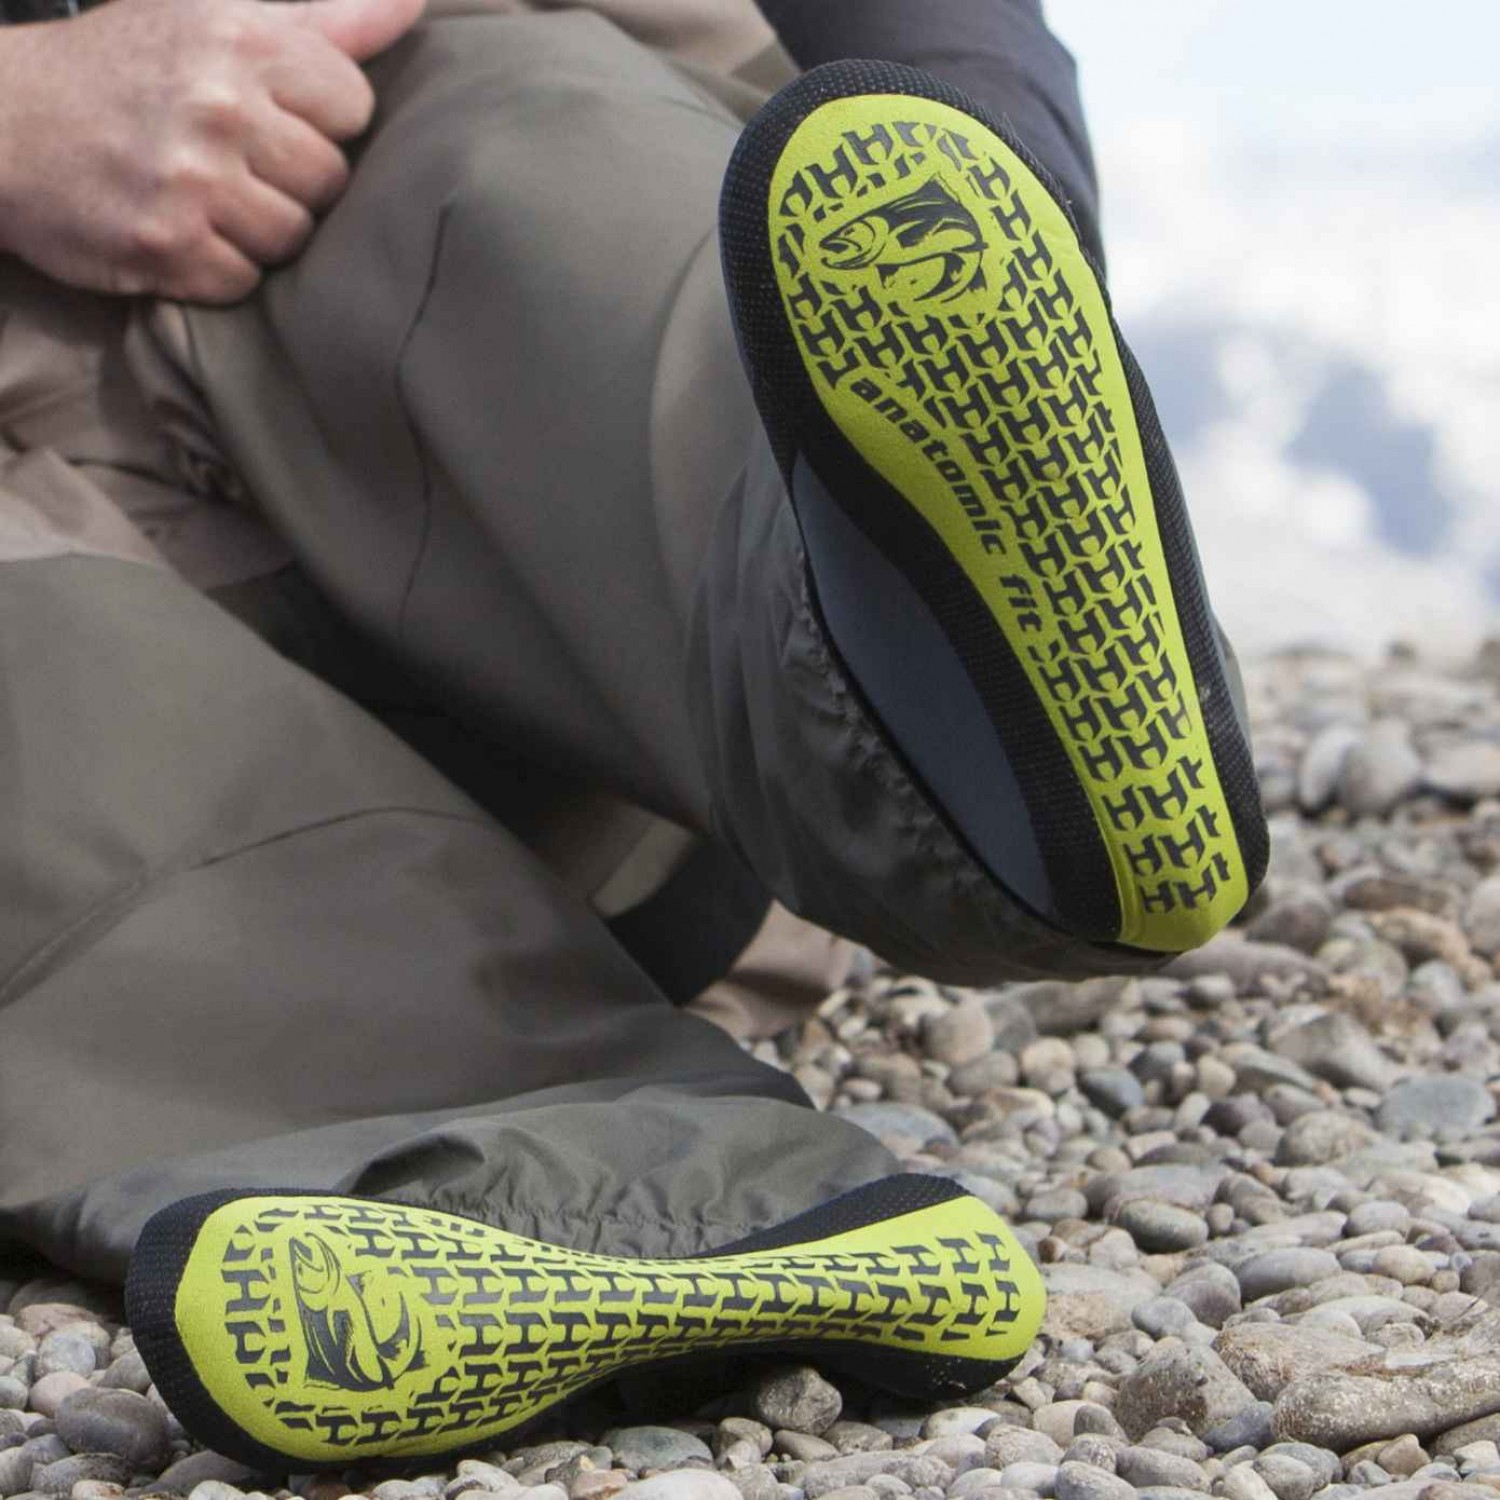 Hodgman Aesis Stocking Foot Digi Camo / Dark Charcoal